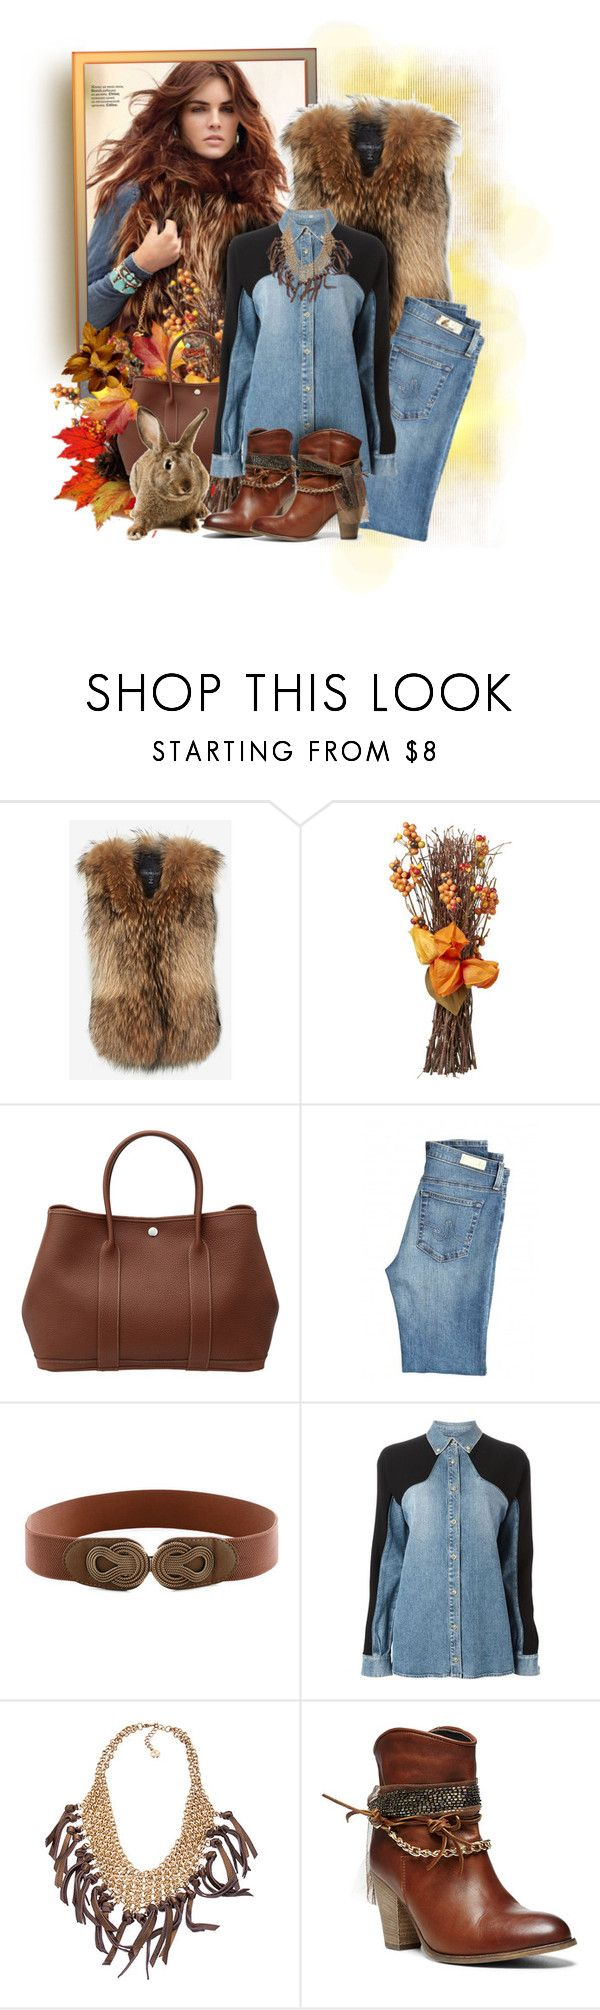 """Last Fall Colors"" by anny-foxx ❤ liked on Polyvore featuring Adrienne Landau, Hermès, AG Adriano Goldschmied, FAUSTO PUGLISI, Skinny by Jessica Elliot and Steve Madden"